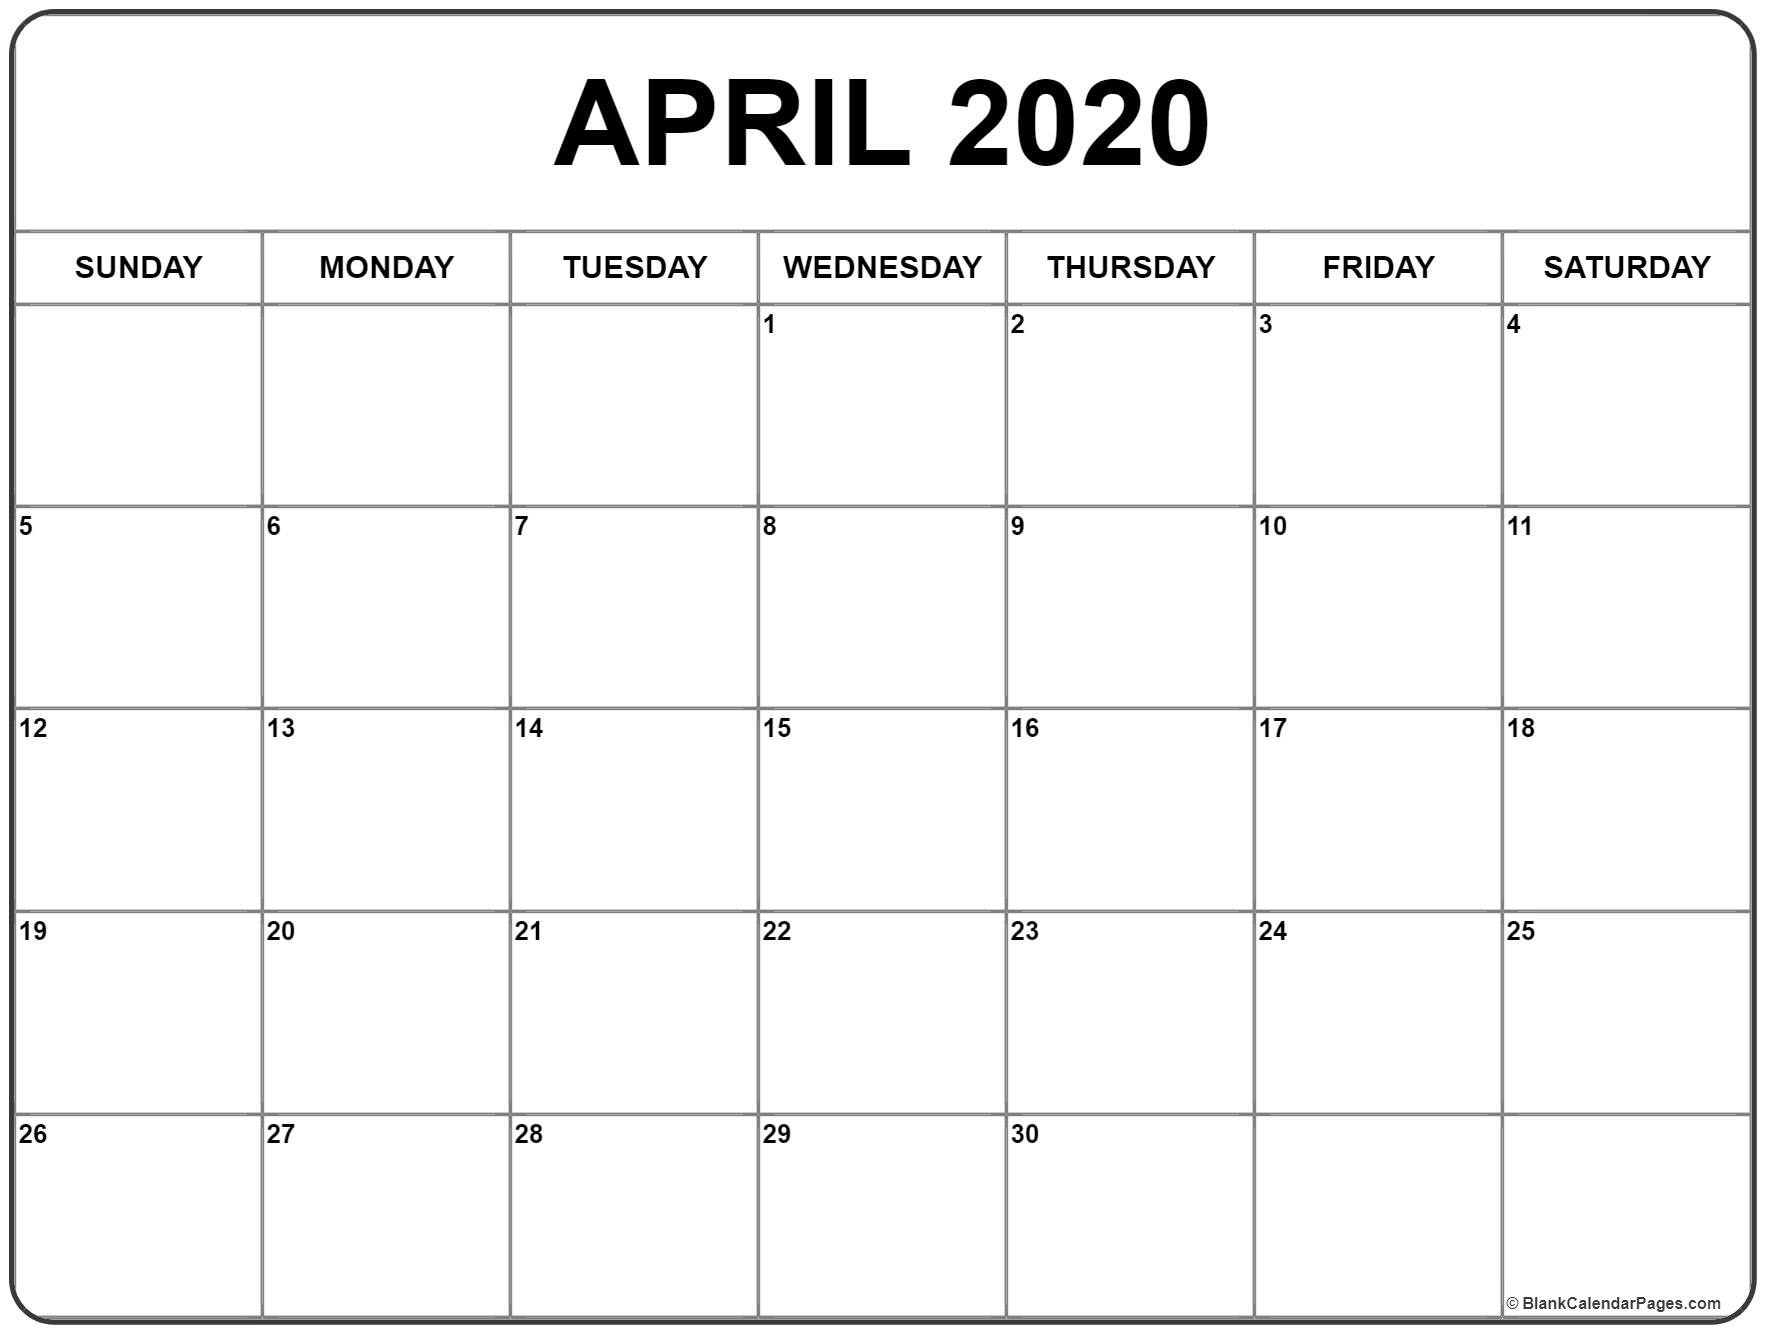 April 2020 Calendar | Free Printable Monthly Calendars-Printable Blank Calendar Pages Free 2020